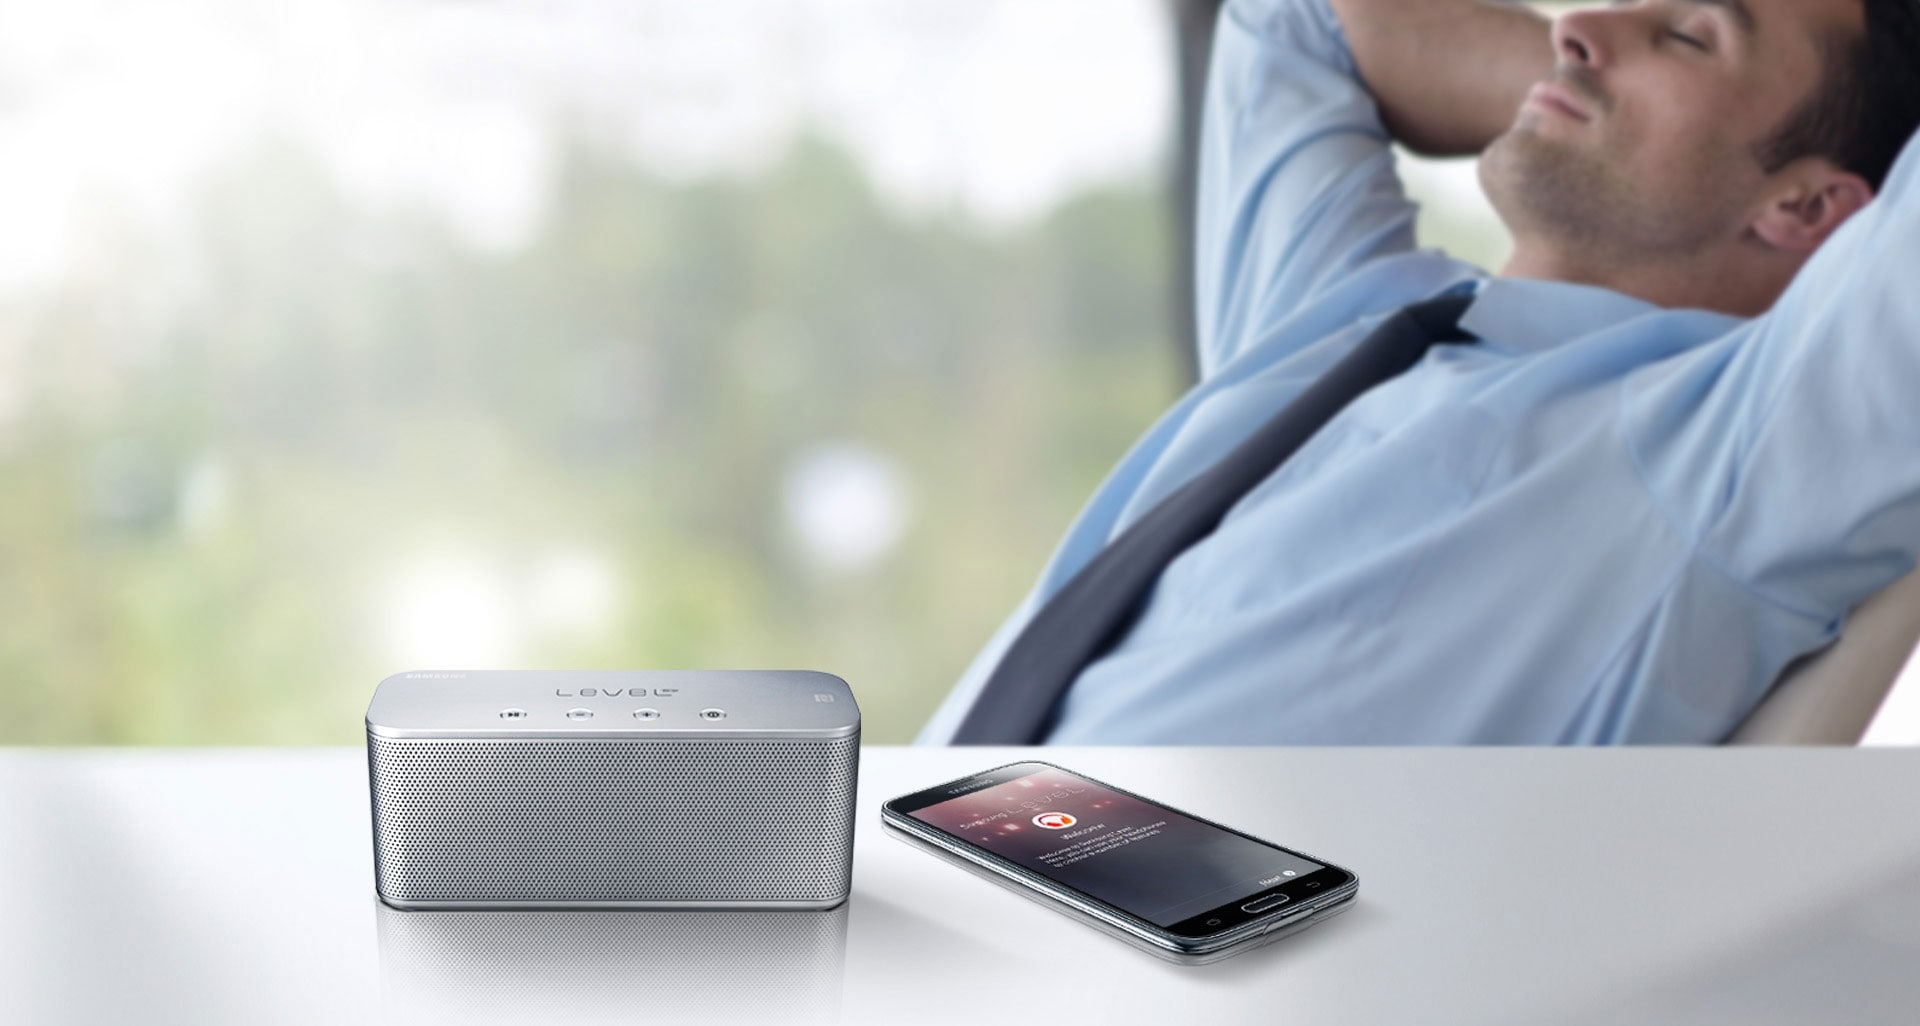 Premium Sound, Optimized for Smart Devices